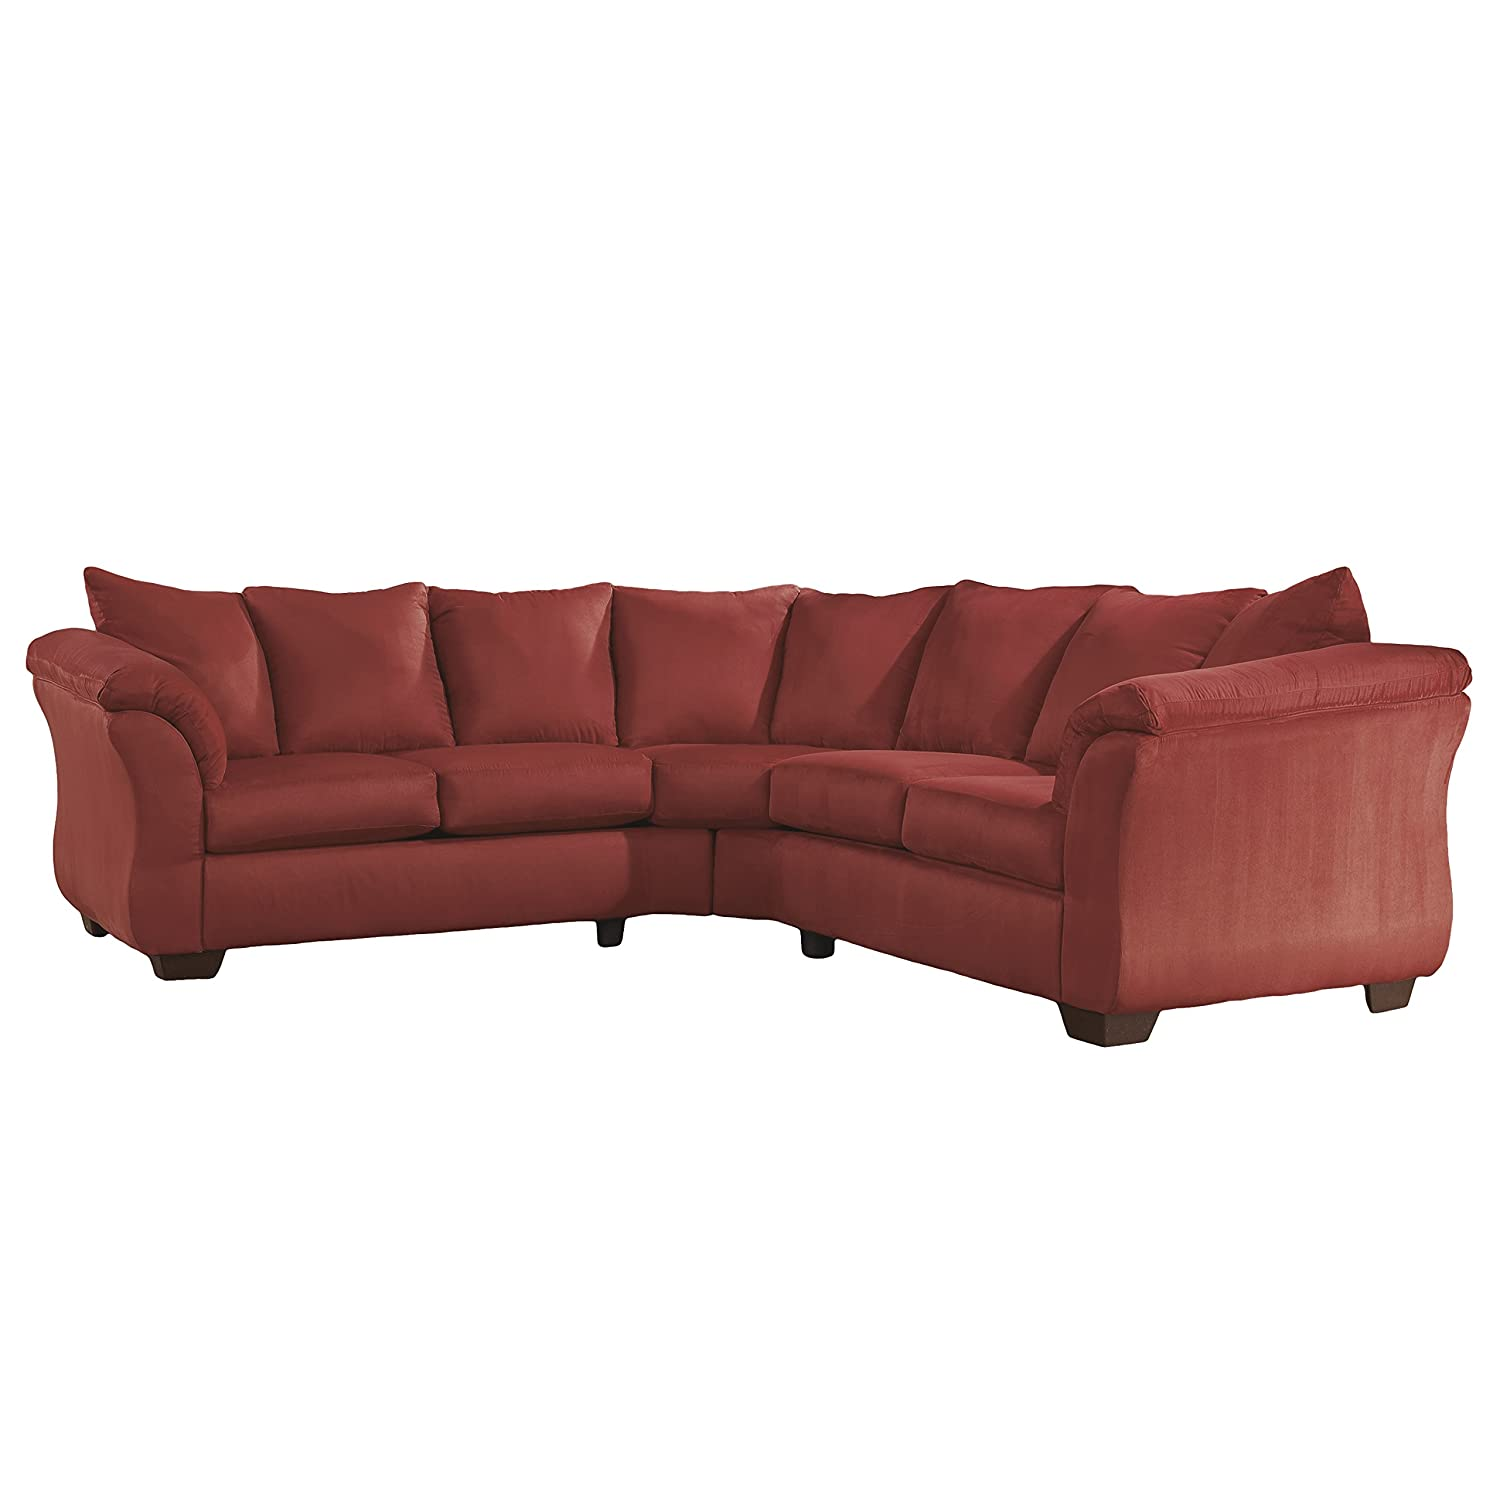 Amazon Signature Design by Ashley Darcy Sectional in